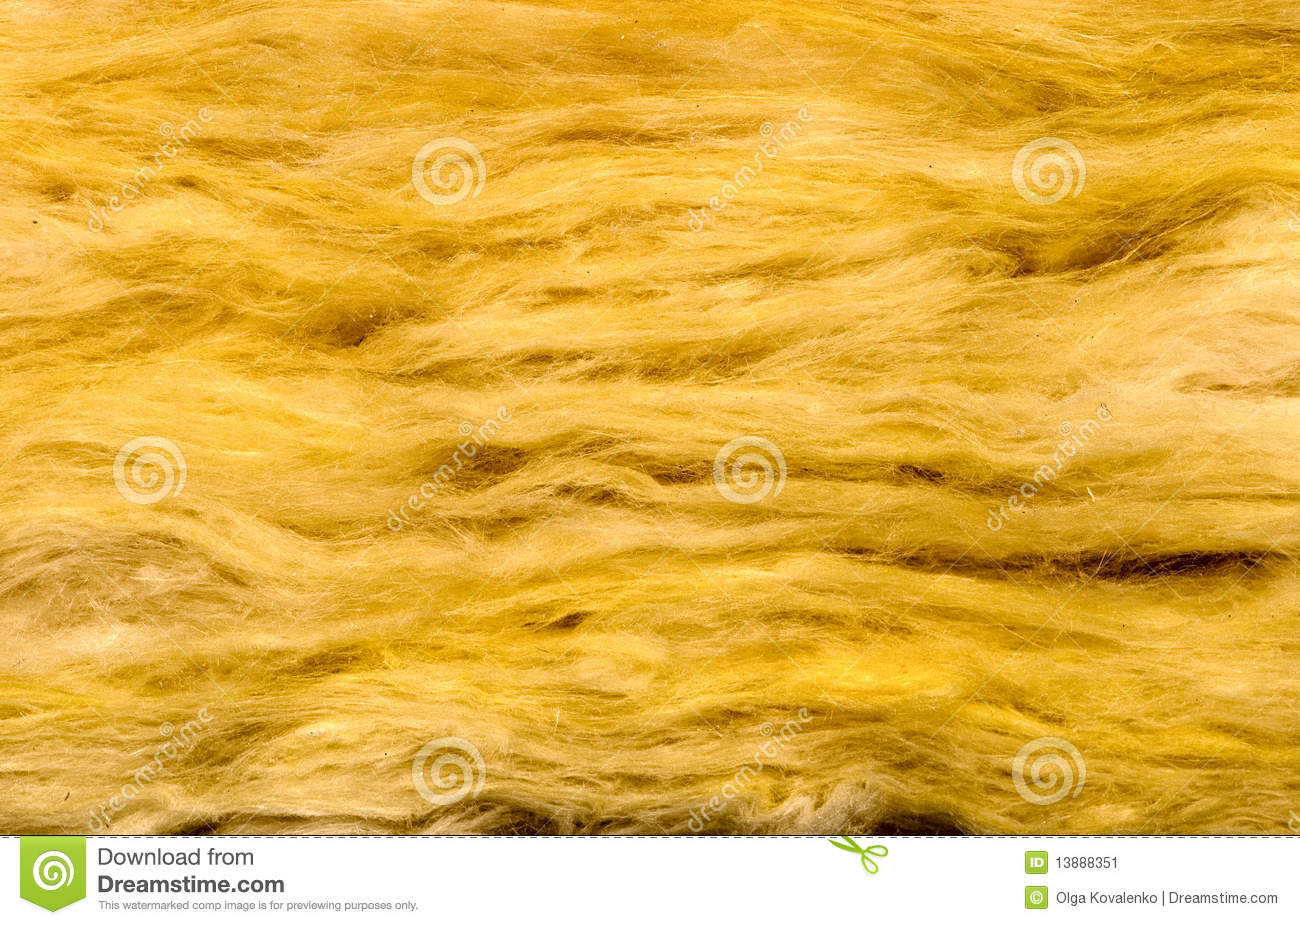 Material of glass wool insulation stock image image for Steel wool insulation